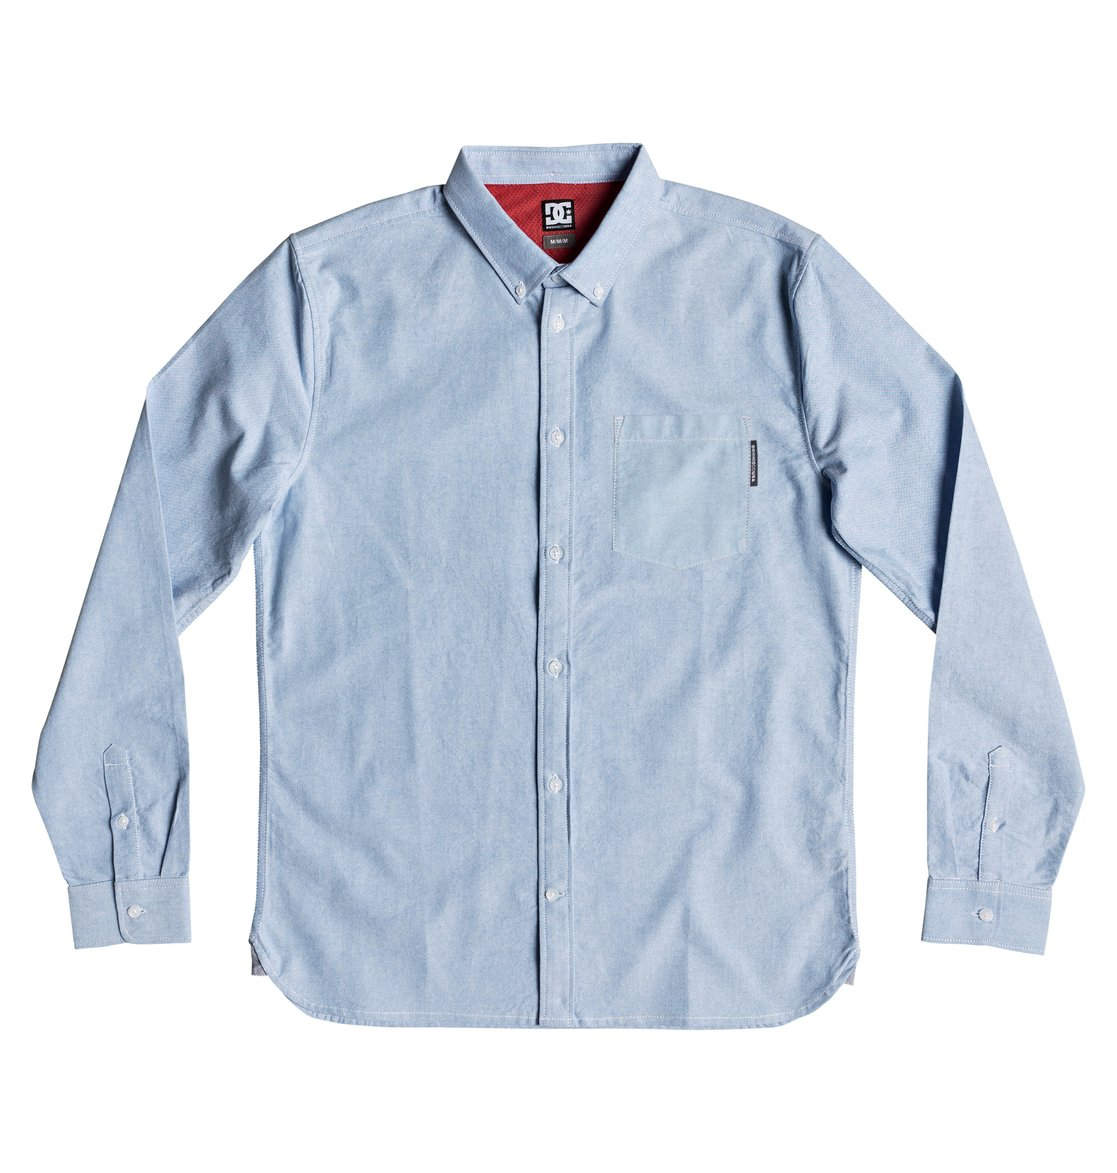 The Oxford Long Sleeve Shirt For Men Edywt03225 Dc Shoes